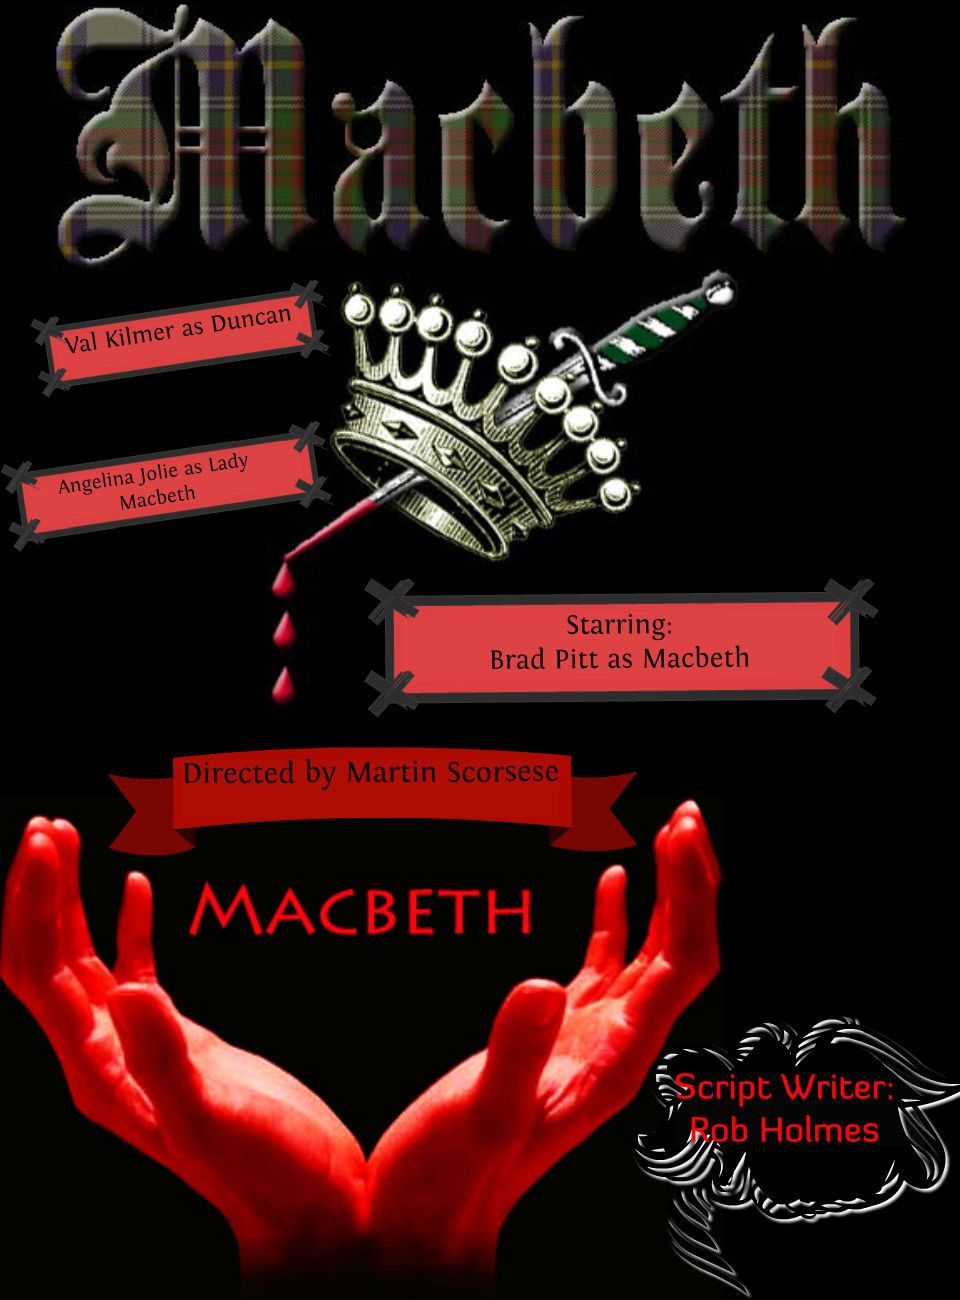 Macbeth poster ideas/inspiration : Macbeth Type ...